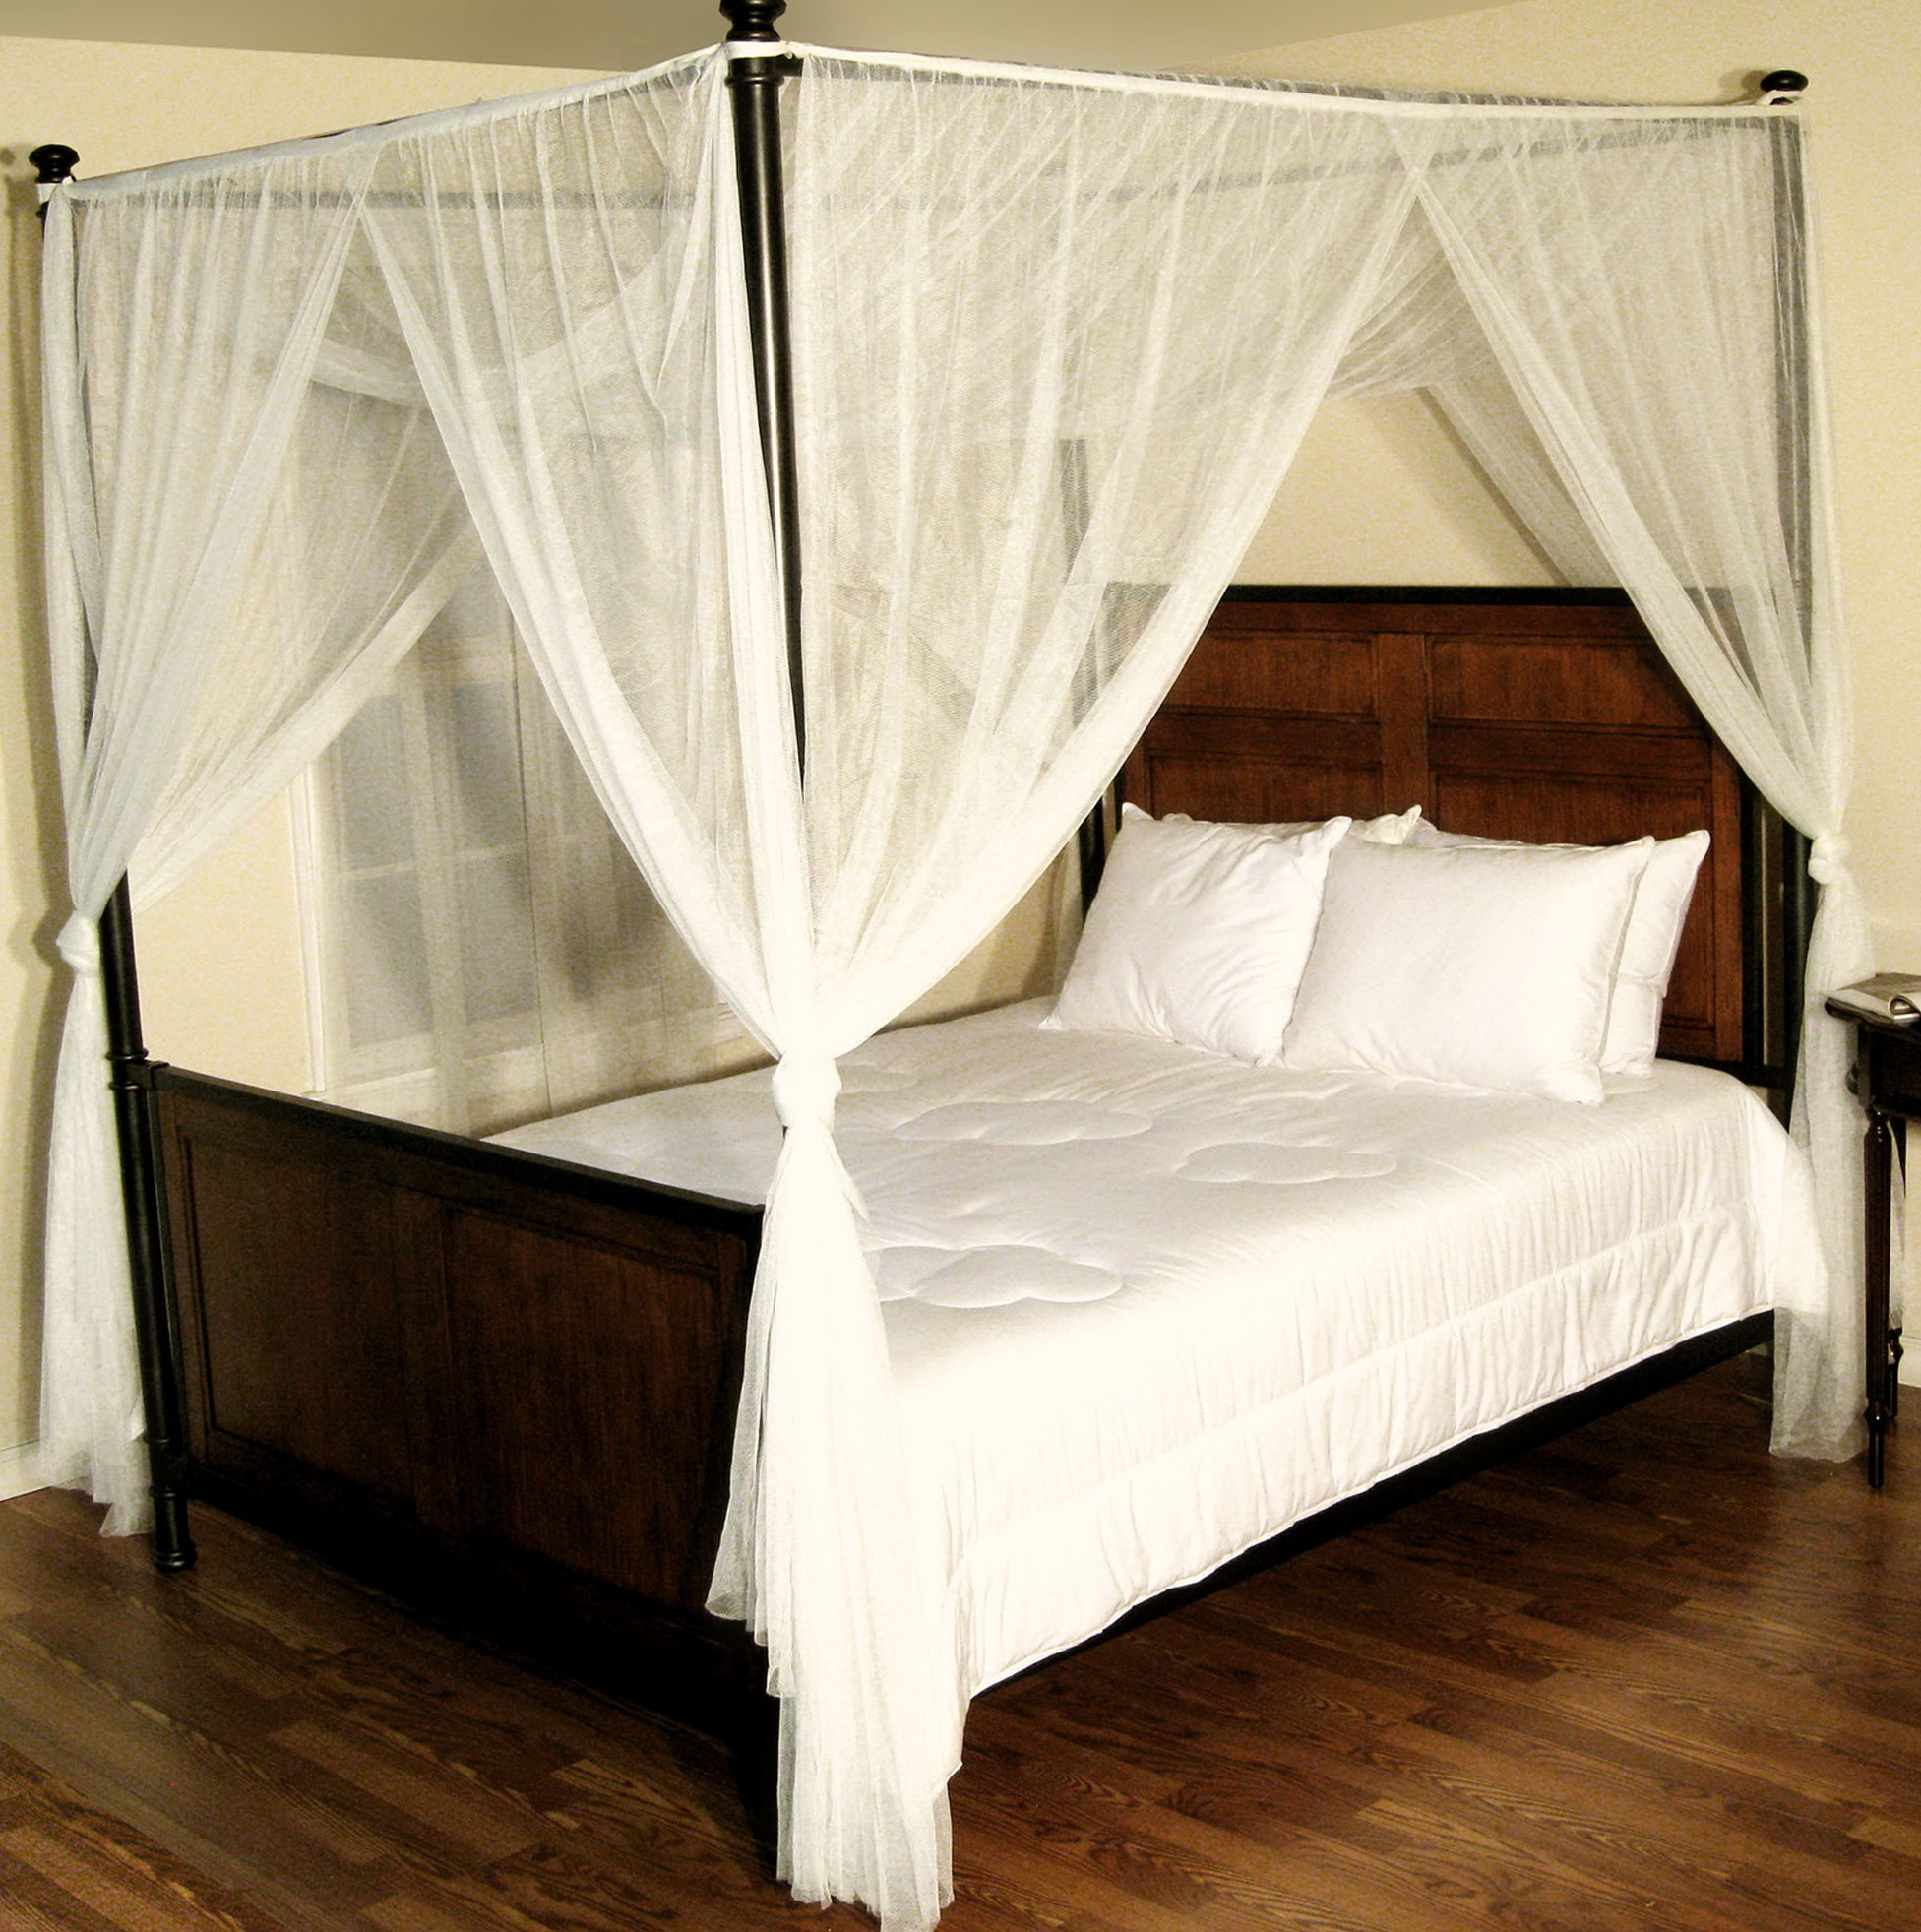 Four poster bed with curtains home design ideas - Four poster bed curtains ...